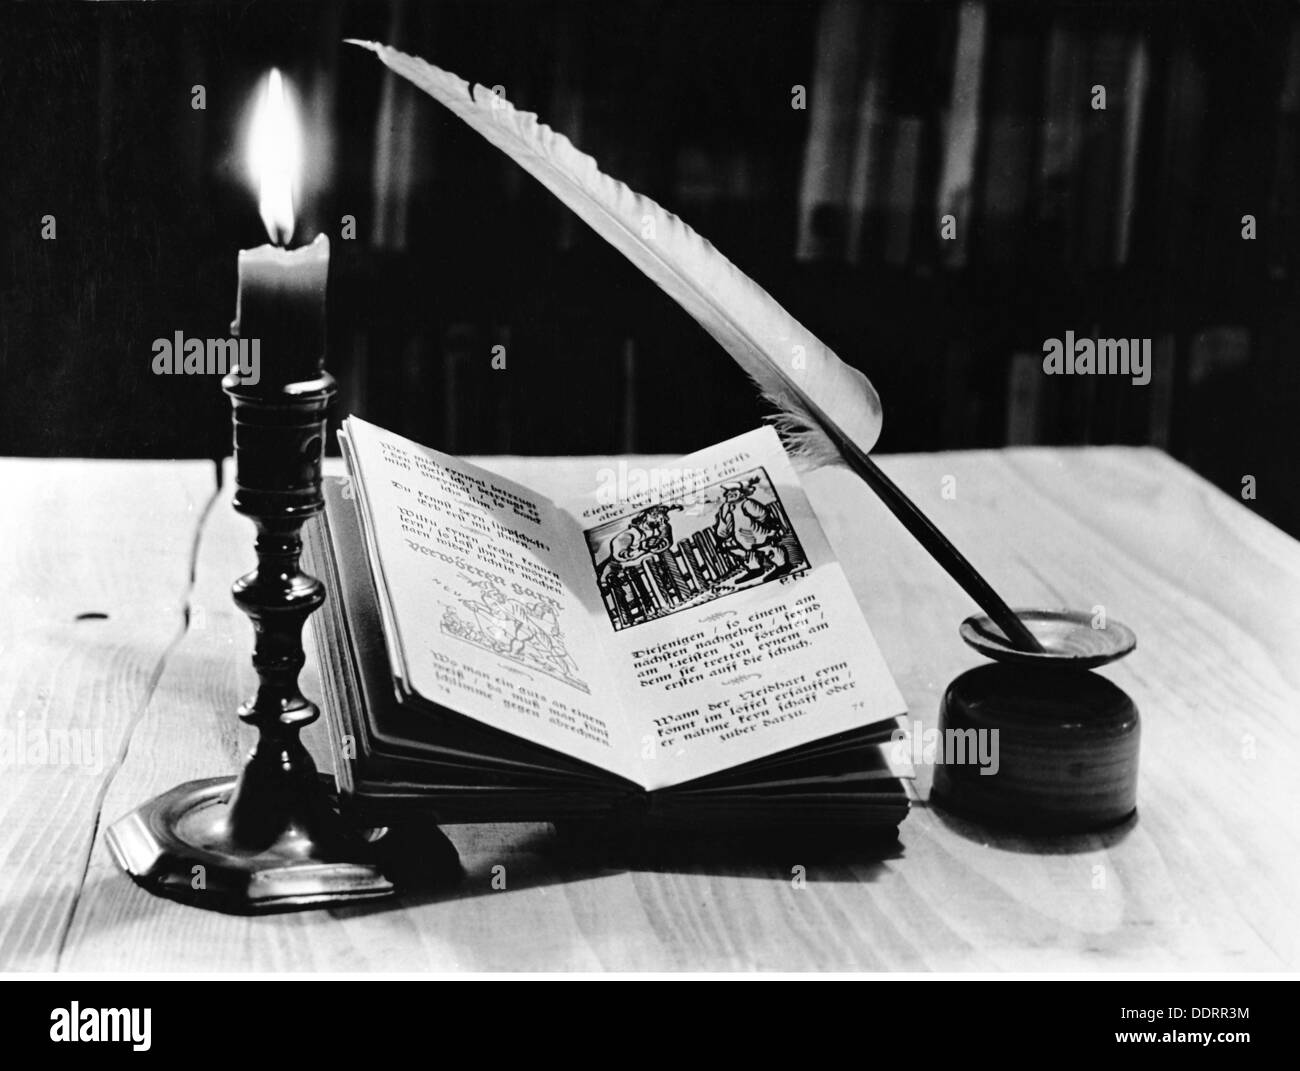 literature book still life of candle book and quill 20th century 20th century nostalgia candlestick candlesticks - Stock Image